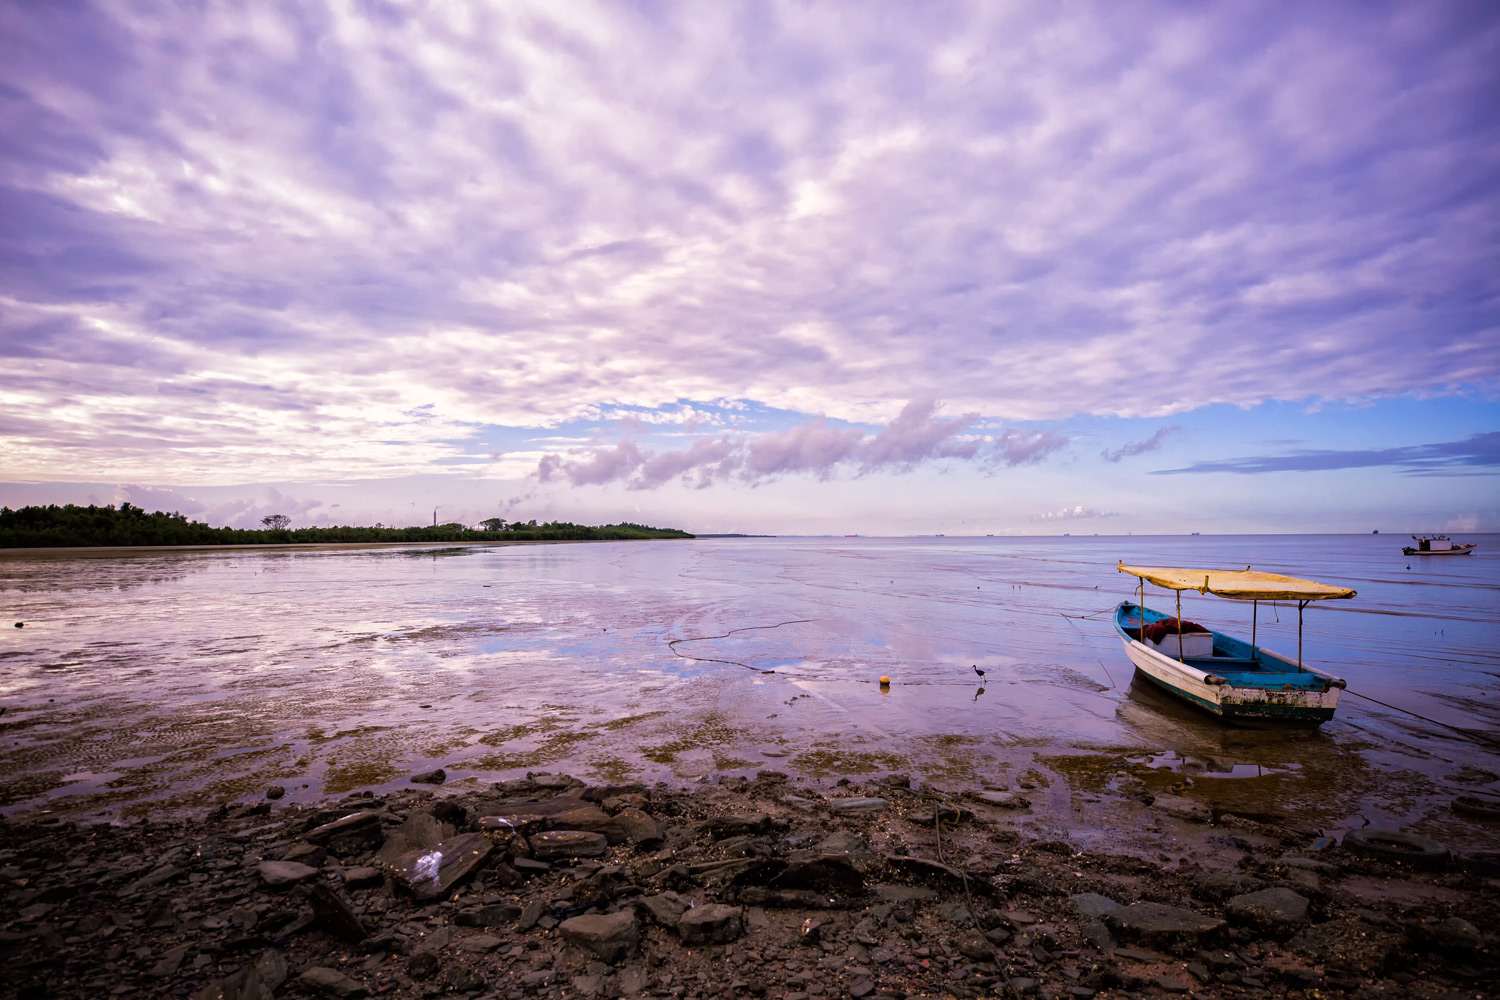 Using HDR Photography to Your Advantage